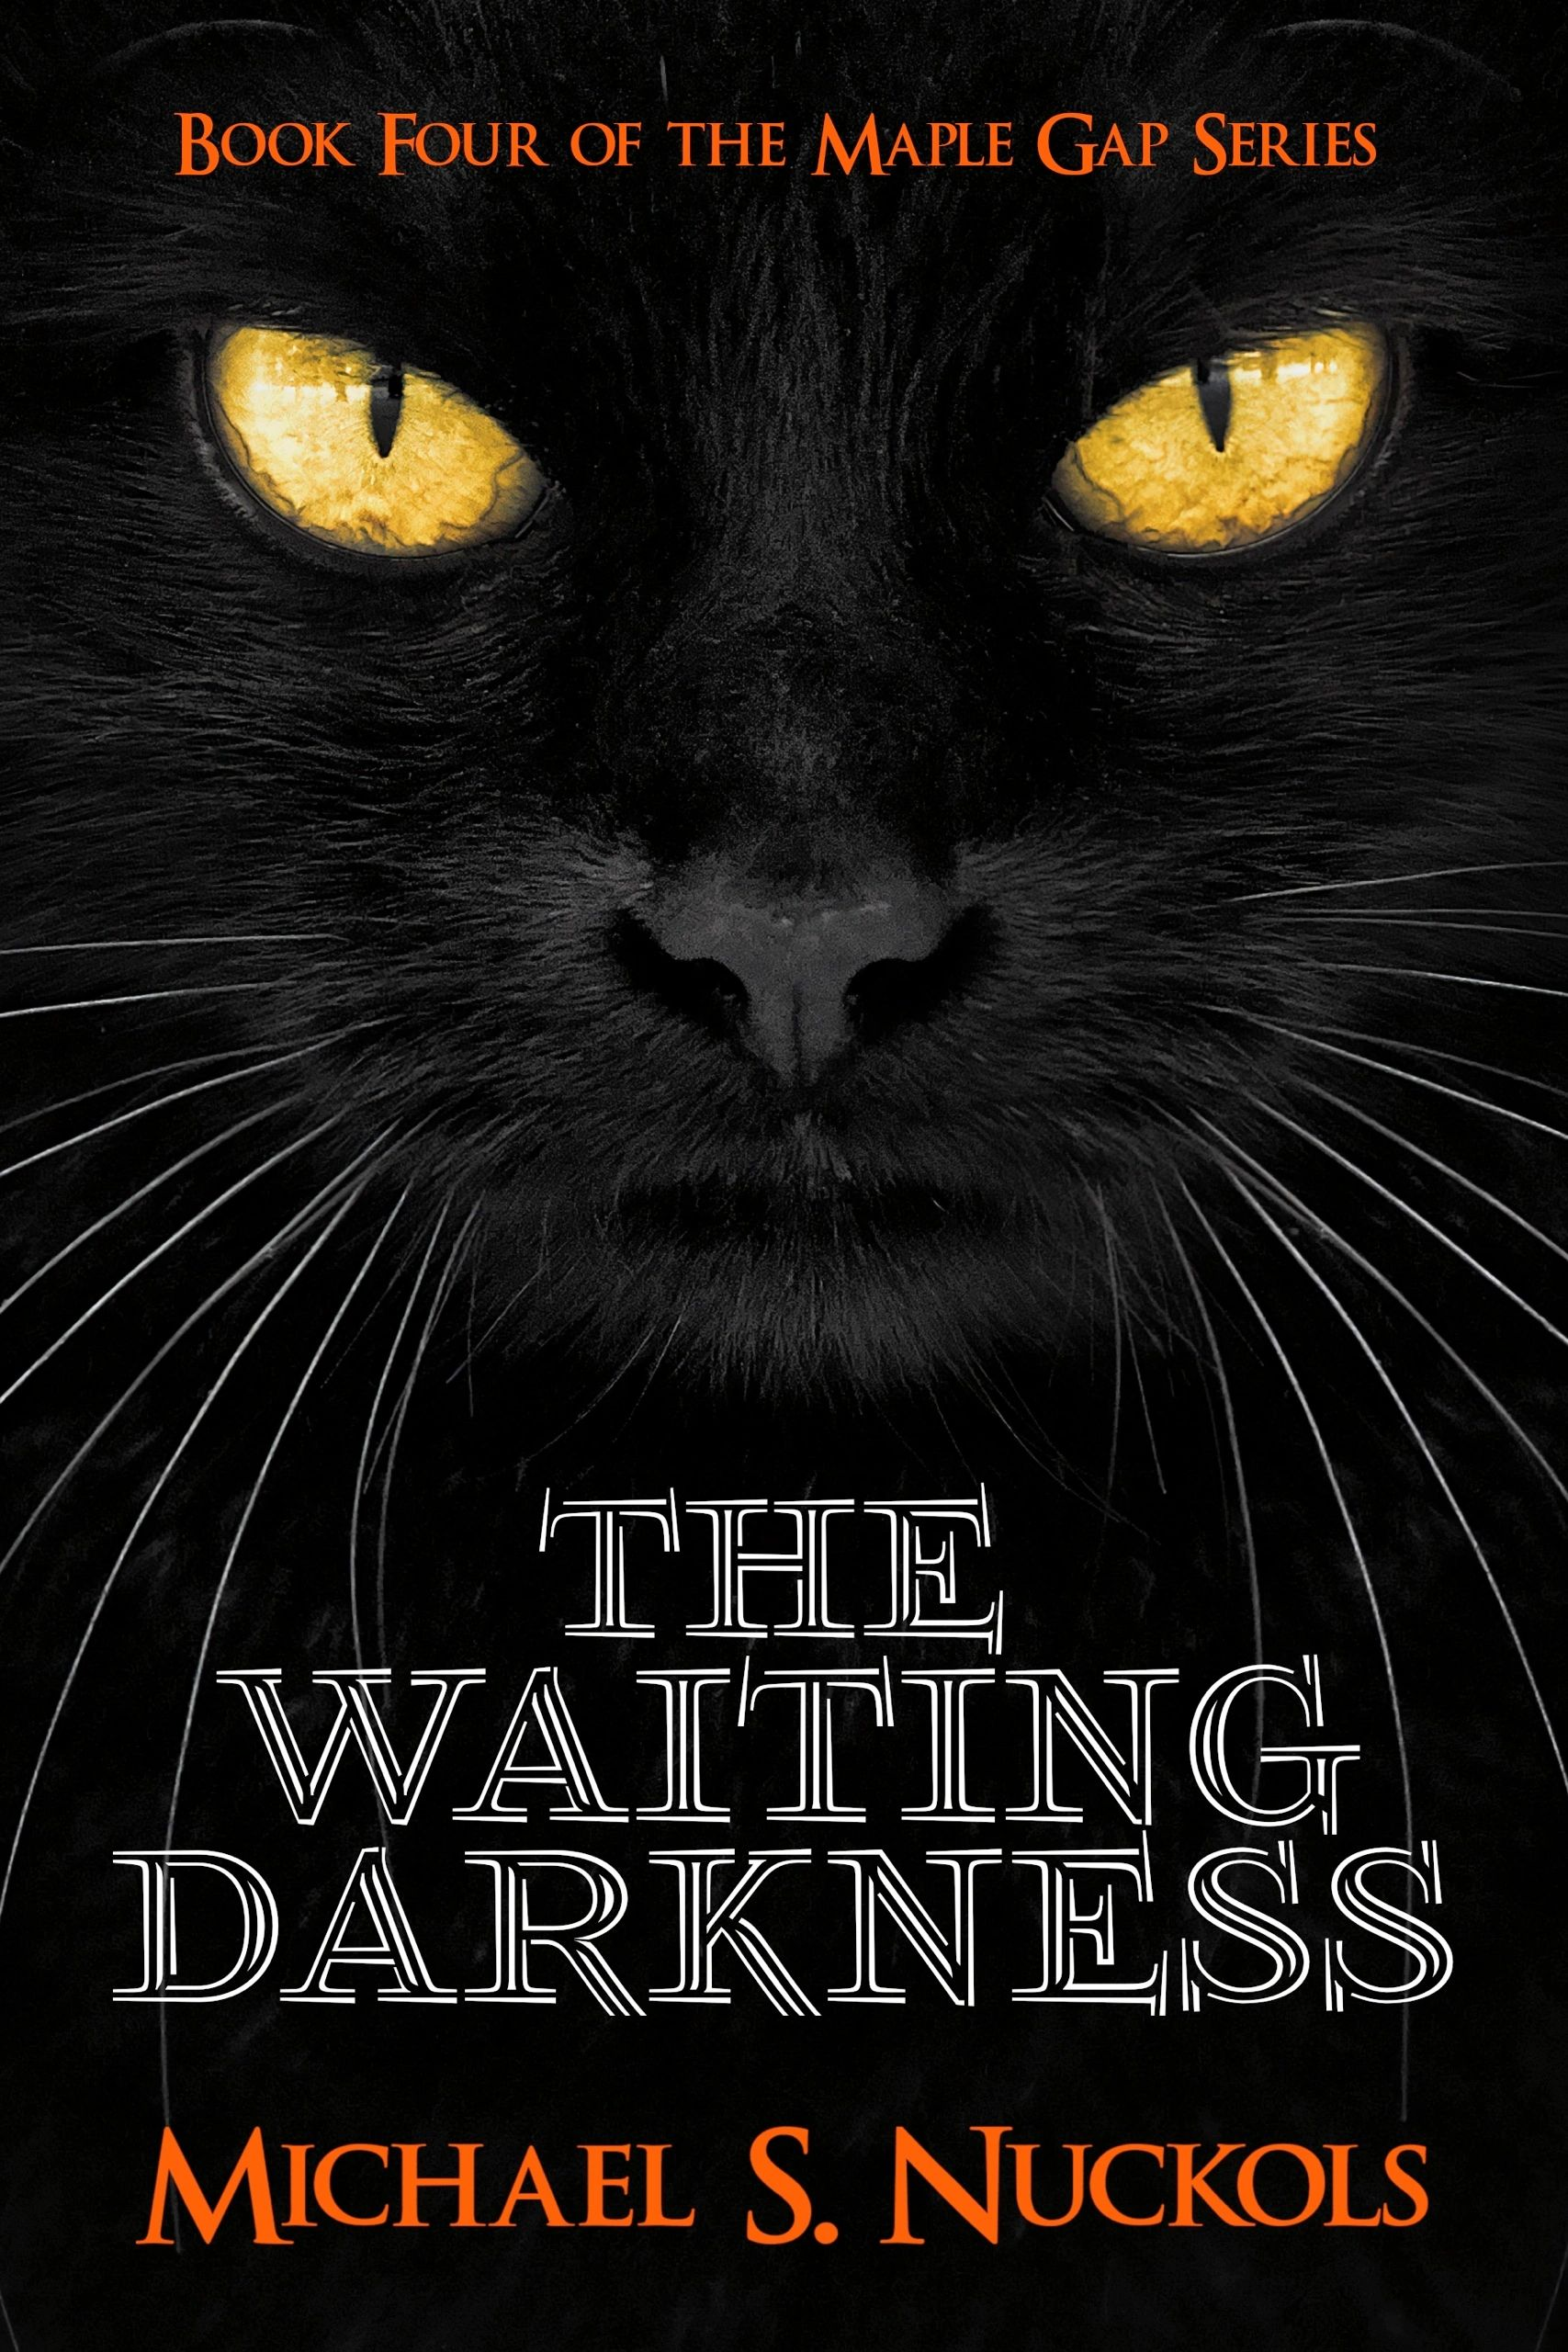 The cover of The Waiting Darkness shows a black cat